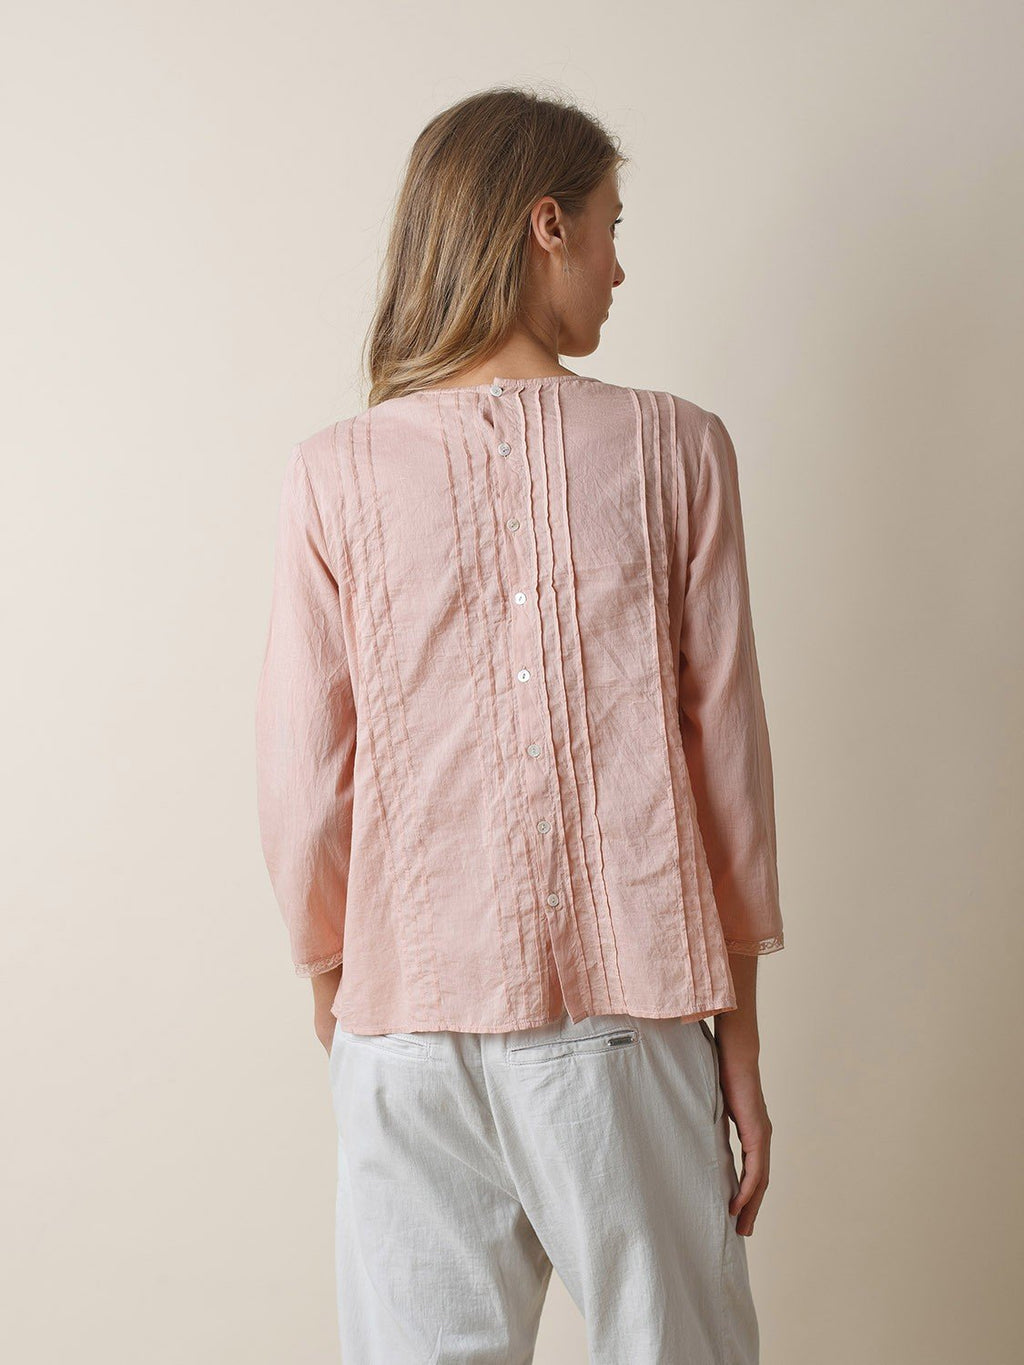 Indi & Cold powder pink blouse